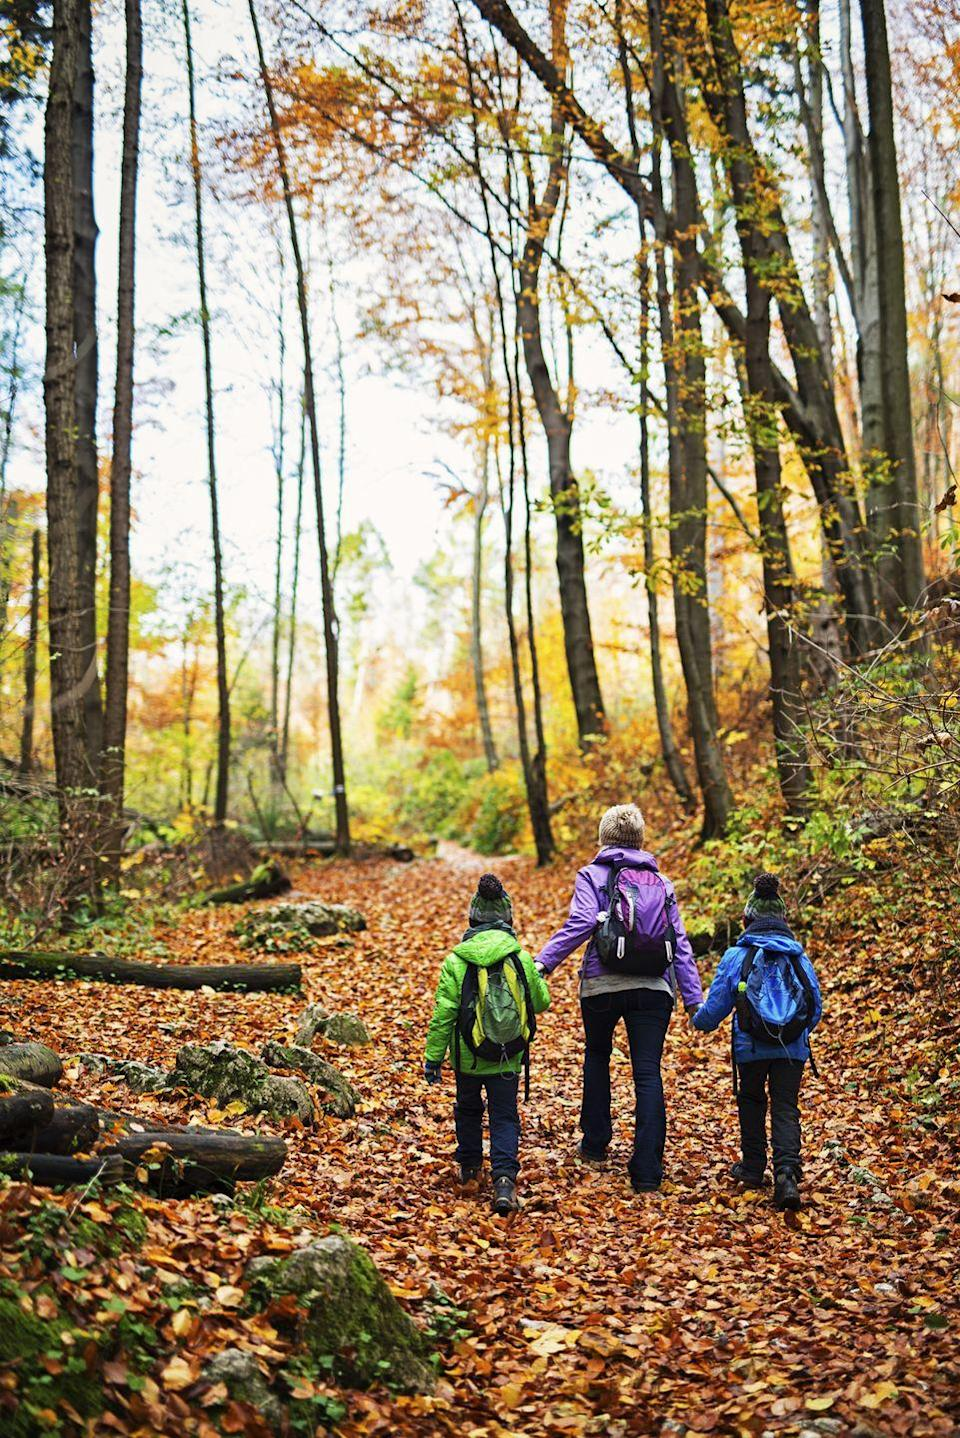 "<p>Pack a few bags, bundle up, and make a day trip to a local forest this fall. Little ones will have a blast exploring new territory, especially if there's a spectacular aerial view waiting for them at the end. </p><p><a class=""link rapid-noclick-resp"" href=""https://www.amazon.com/Columbia-Womens-Redmond-Waterproof-Regular/dp/B01015RJTI/?tag=syn-yahoo-20&ascsubtag=%5Bartid%7C10050.g.2633%5Bsrc%7Cyahoo-us"" rel=""nofollow noopener"" target=""_blank"" data-ylk=""slk:SHOP HIKING BOOTS"">SHOP HIKING BOOTS</a></p>"